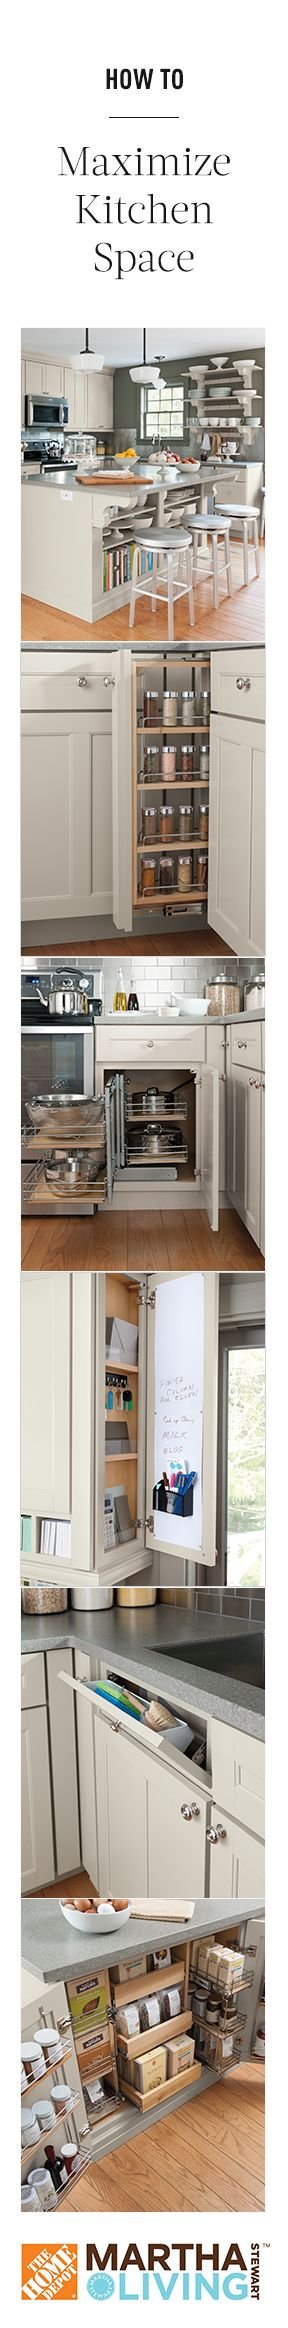 How to maximize kitchen space: Kitchens Spaces, Nifti Ideas, Cookbook Spaces, Keys Hold, Kitchens Ideas, Sinks Clean, Spices Racks, Kitchen Ideas, Kitchens Storage